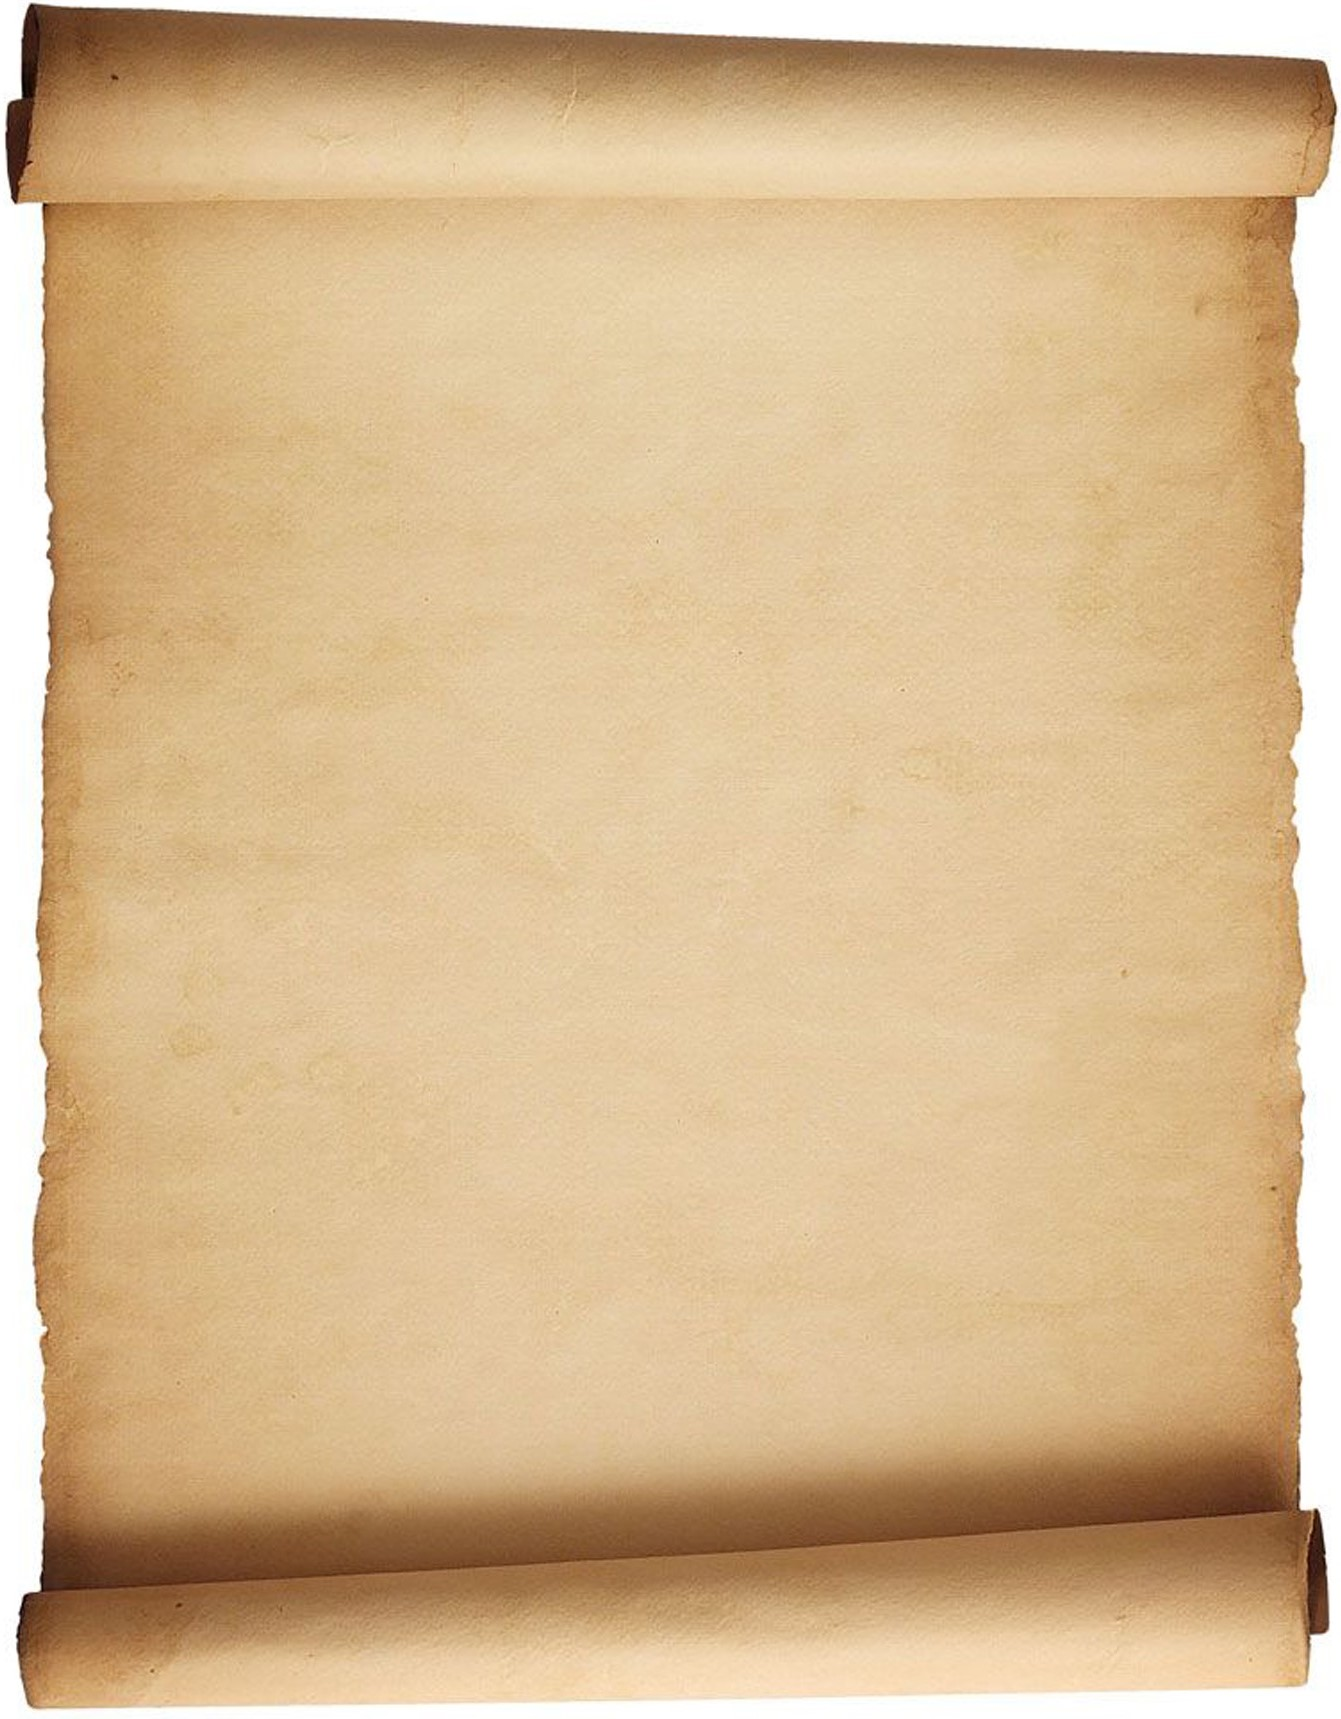 blank scroll paper pictures to pin on pinterest pinsdaddy